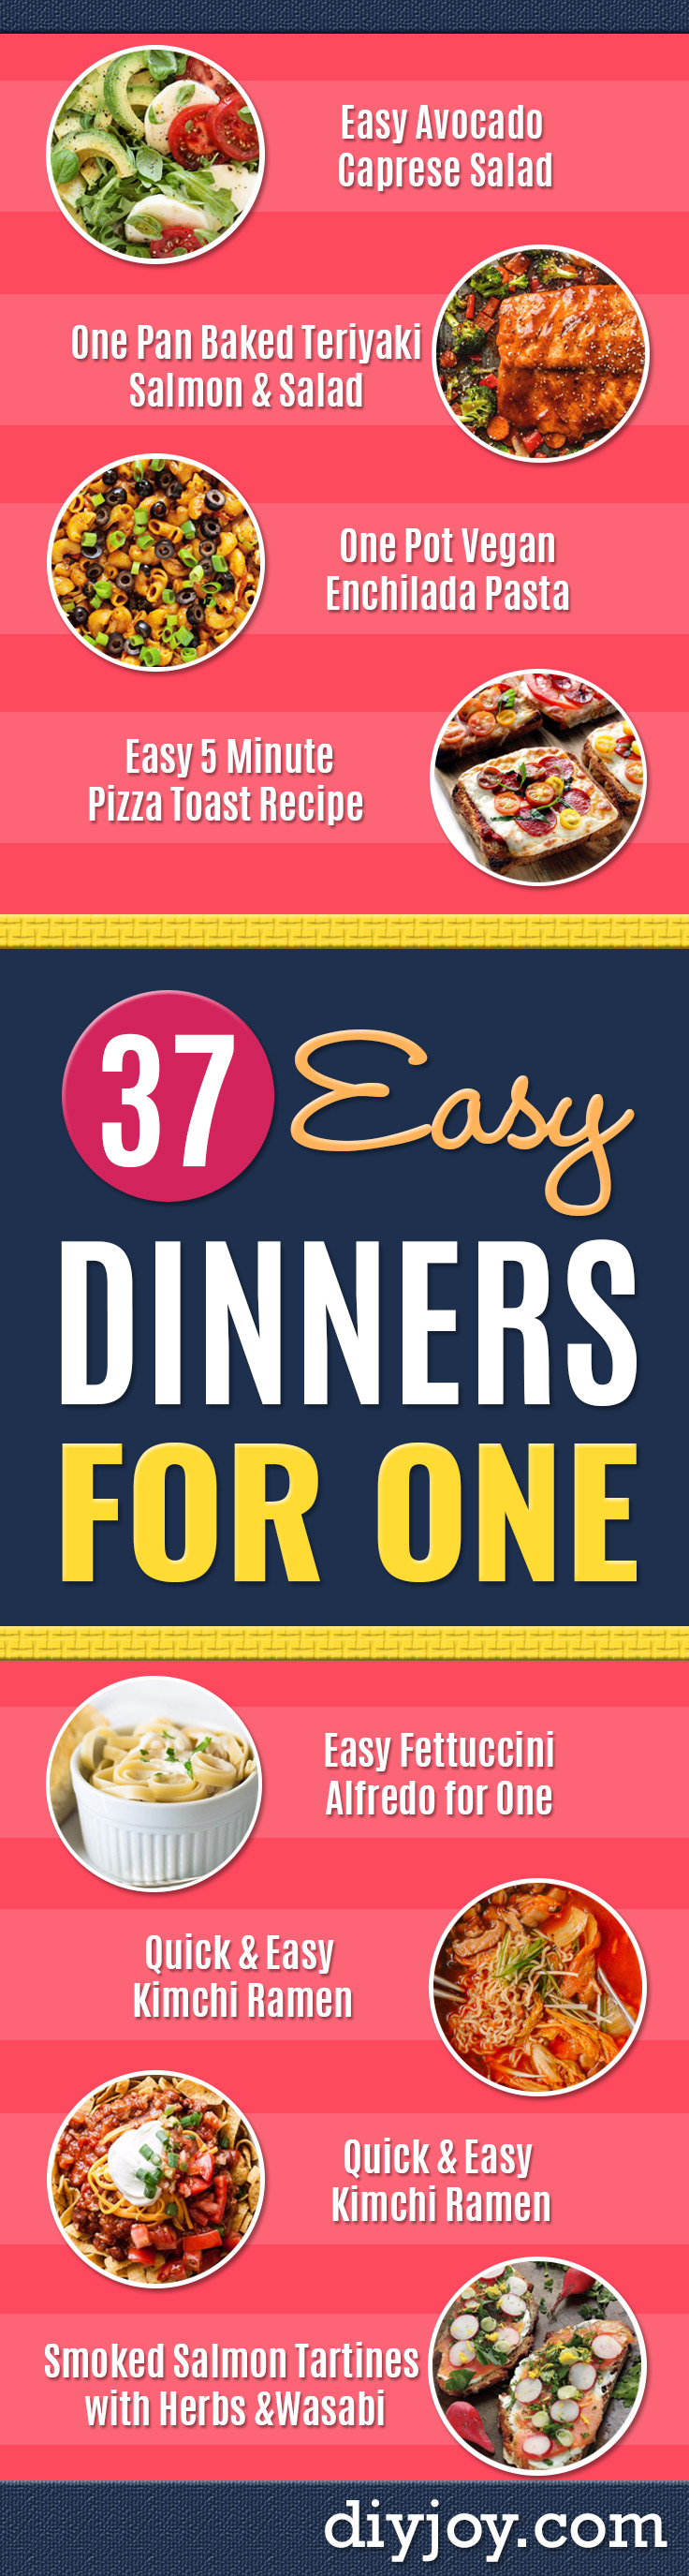 Easy Dinner Ideas for One - Quick, Fast and Simple Recipes to Make for a Single Person - Freeze and Make Ahead Dinner Recipe Tips for Best Weeknight Dinners for Singles - Chicken, Fish, Vegetable, No Bake and Vegetarian Options - Crockpot, Microwave, Healthy, Lowfat Options